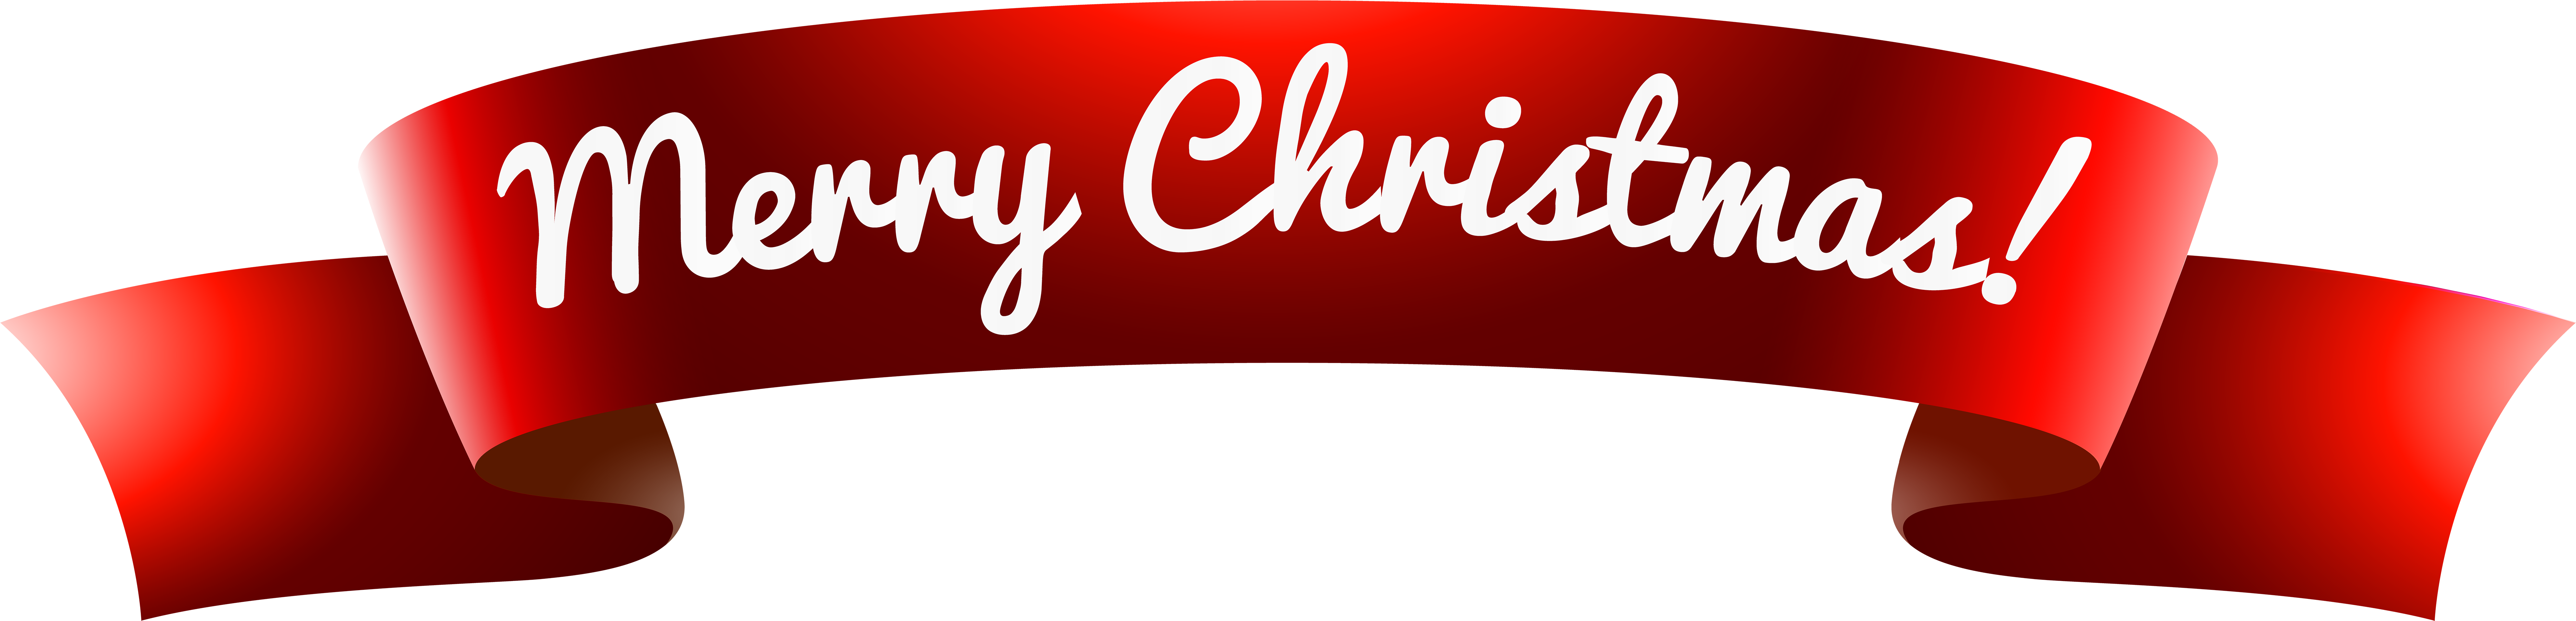 download banner merry christmas png clip art image merry christmas banner png full size png image pngkit download banner merry christmas png clip art image merry christmas banner png full size png image pngkit